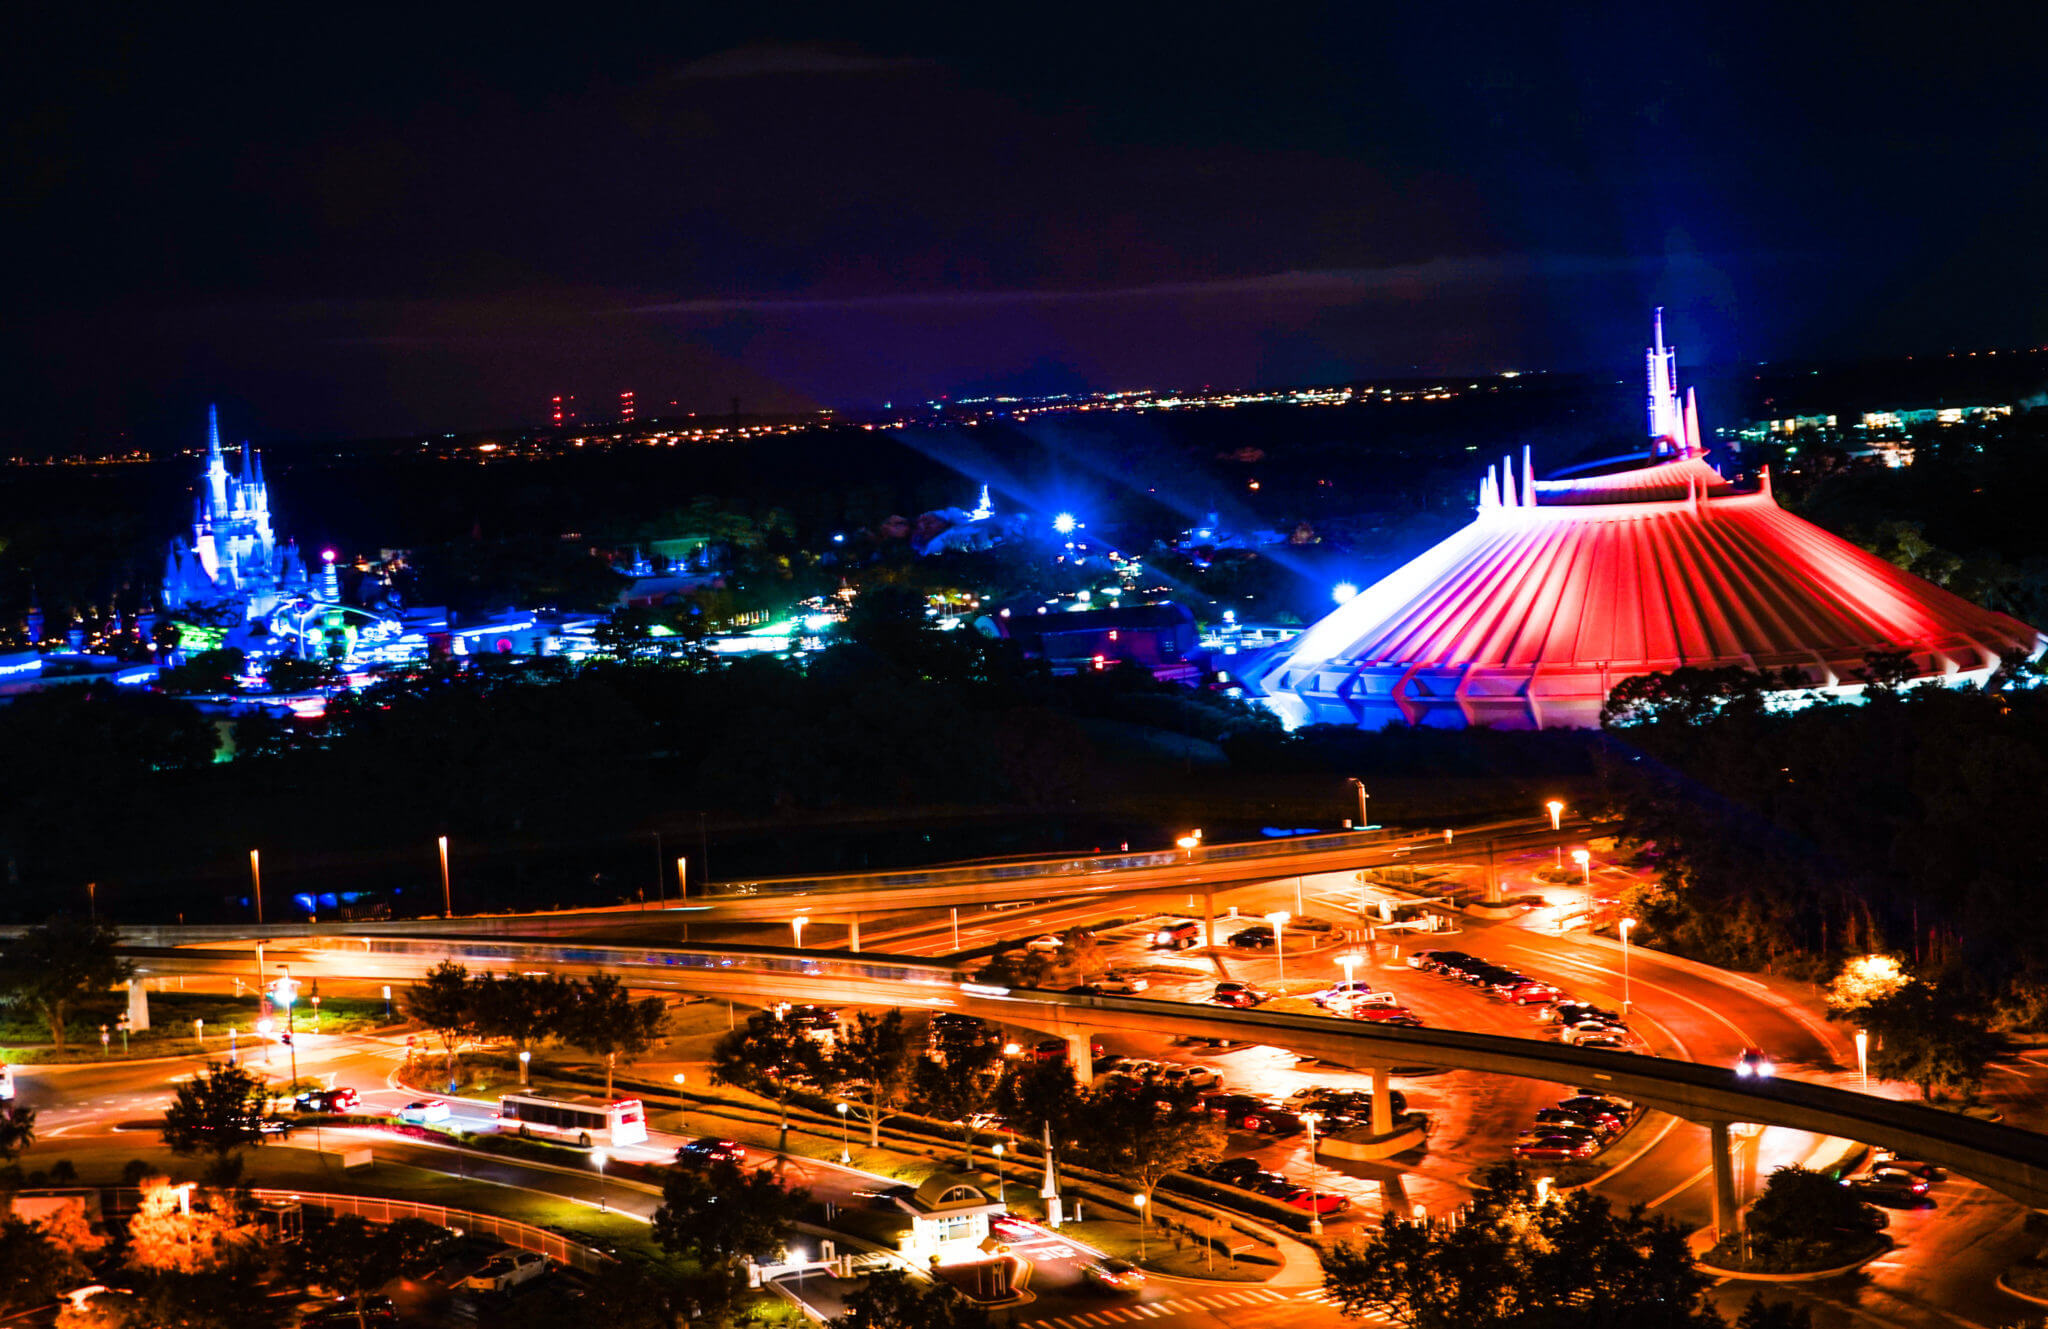 Observation Deck View from California Grill in Magic Kingdom at Disney World